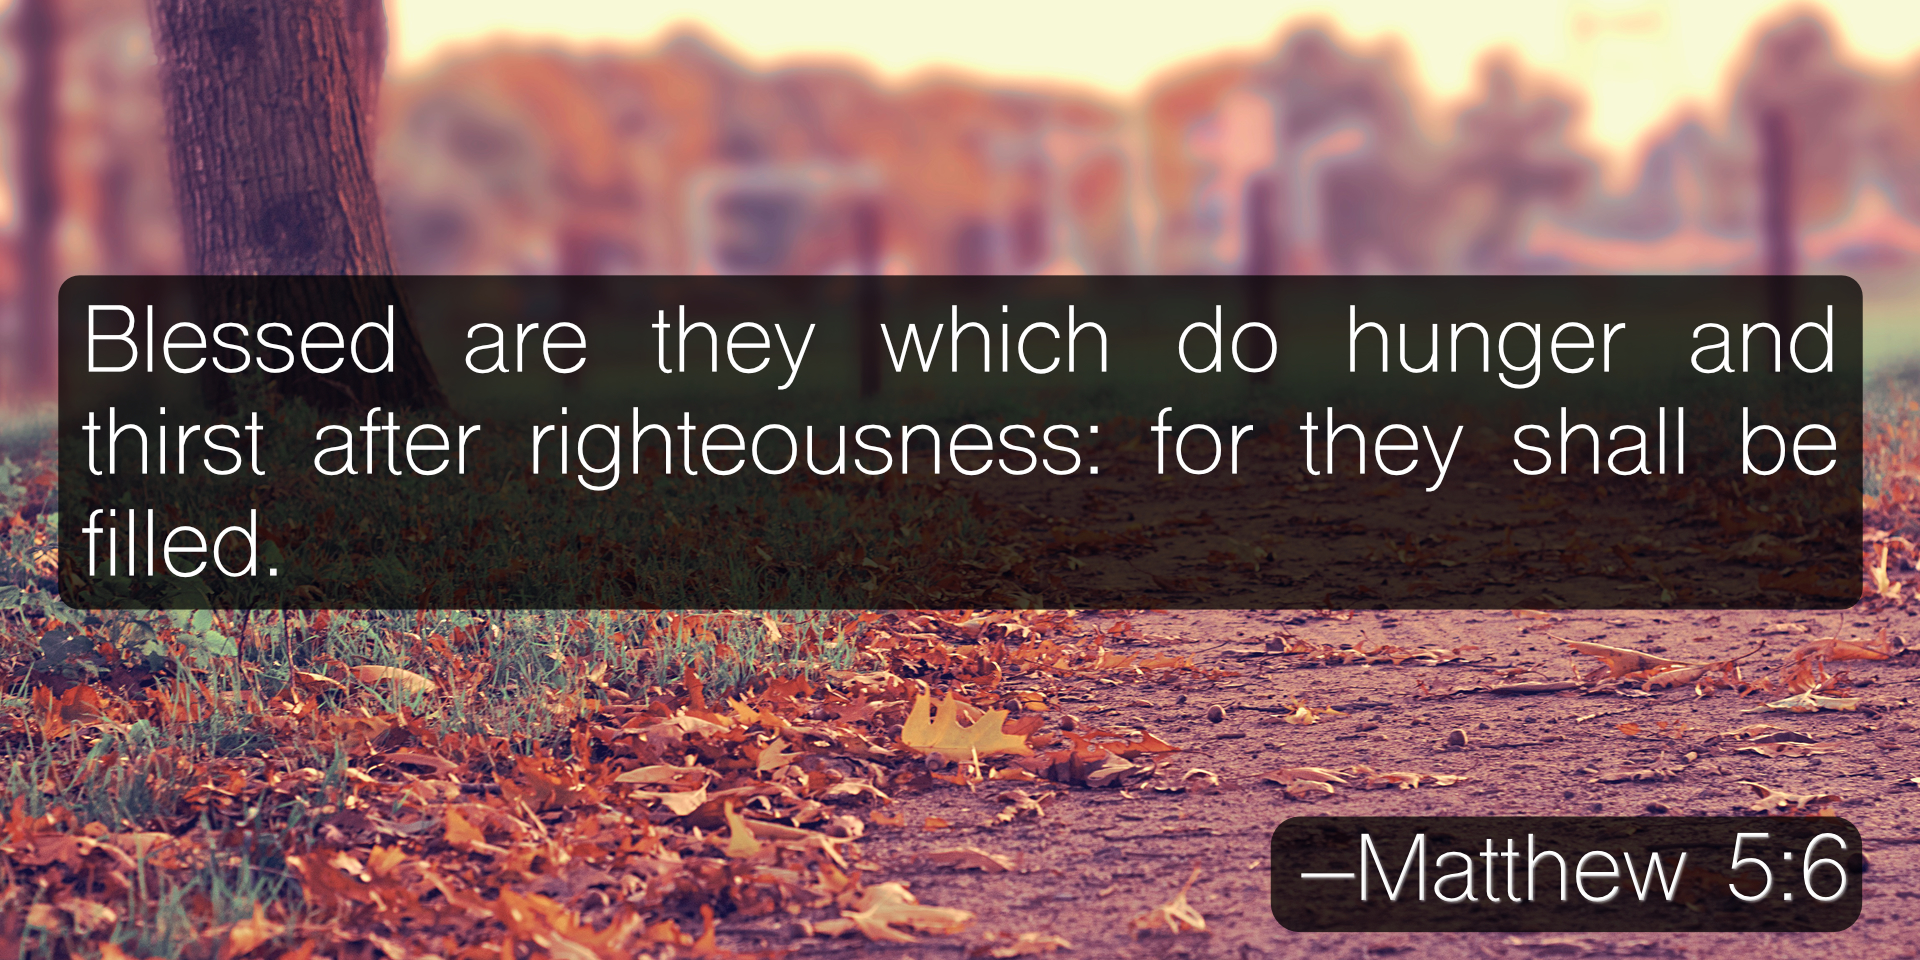 Blessed are they which do hunger and thirst after righteousness: for they shall be filled. –Matthew 5:6